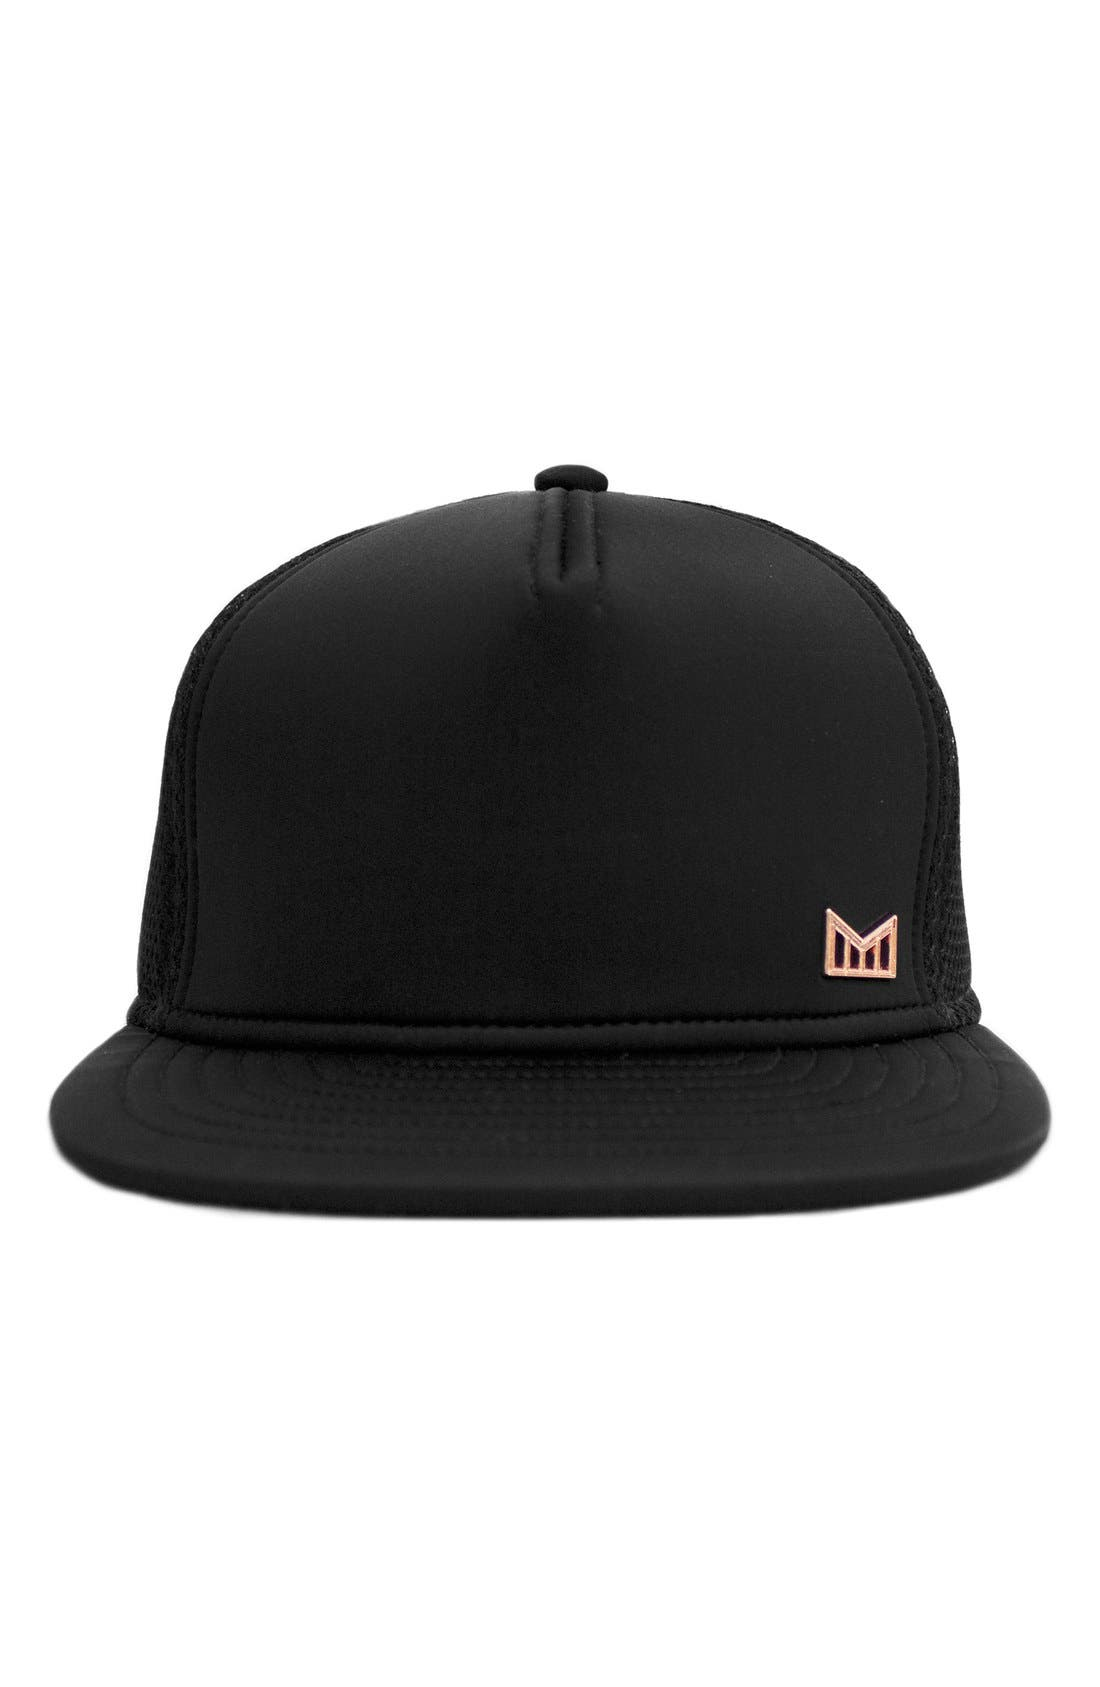 'The Majesty' Mesh Back Snapback Hat,                             Alternate thumbnail 5, color,                             001